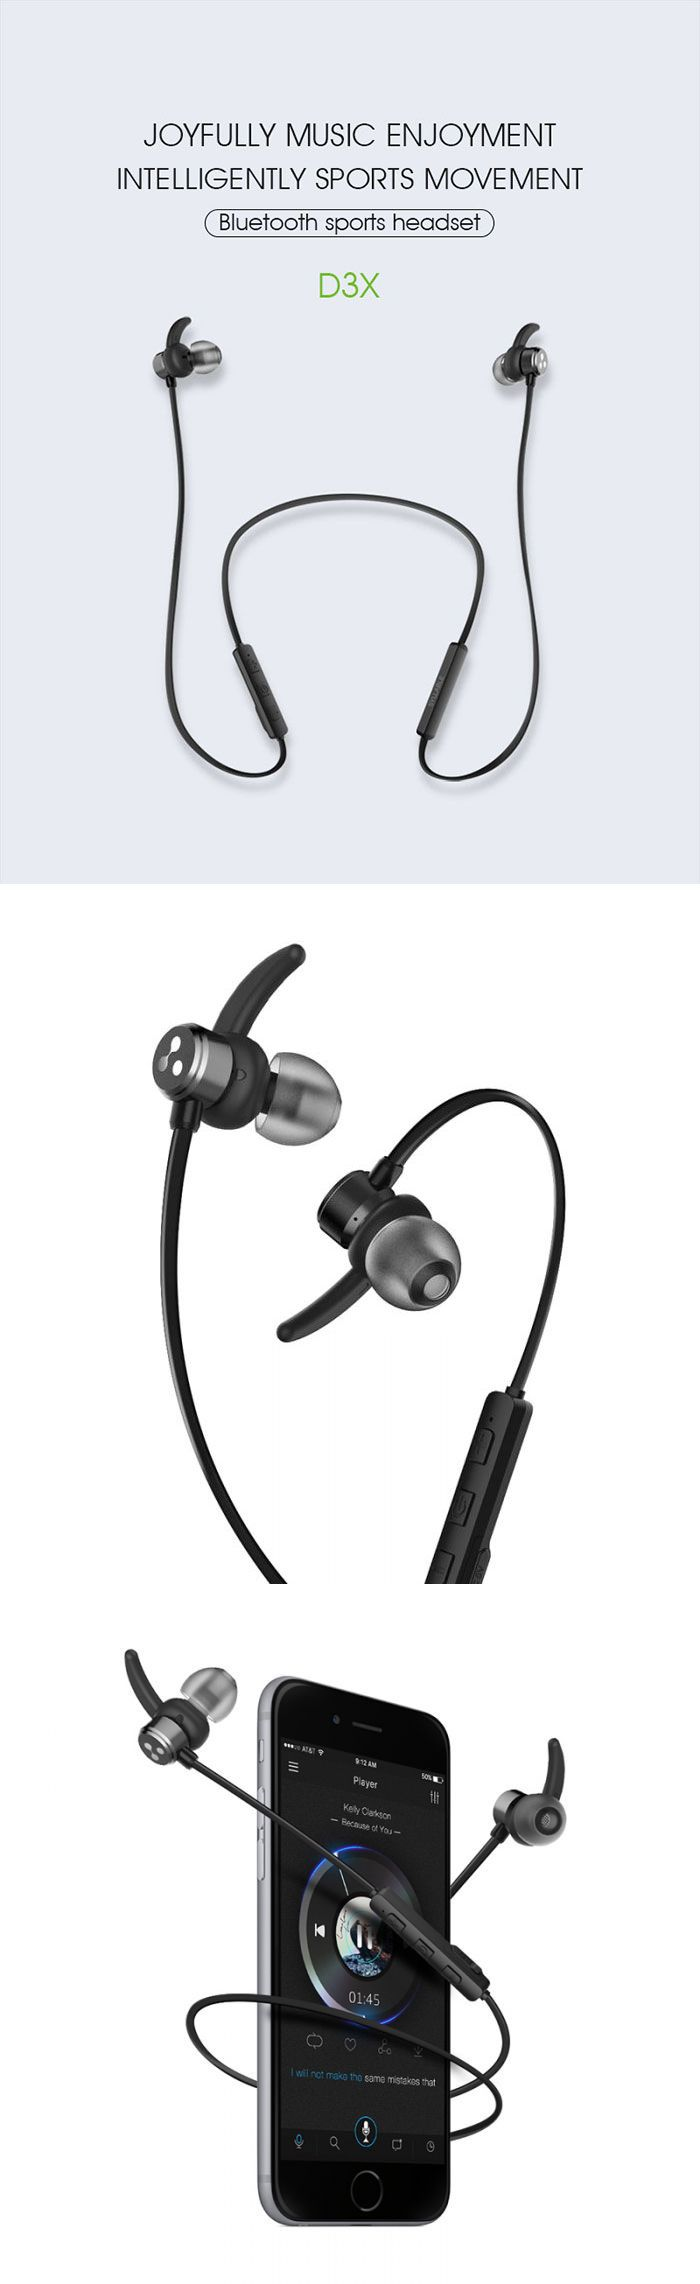 Unique design;Magnetic magnetic design function;Waterproof function;Bluetooth version 4.2;New sports exclusive earbud tips with ear wing-crescent shape;120°tilting angle,ergonomic design.